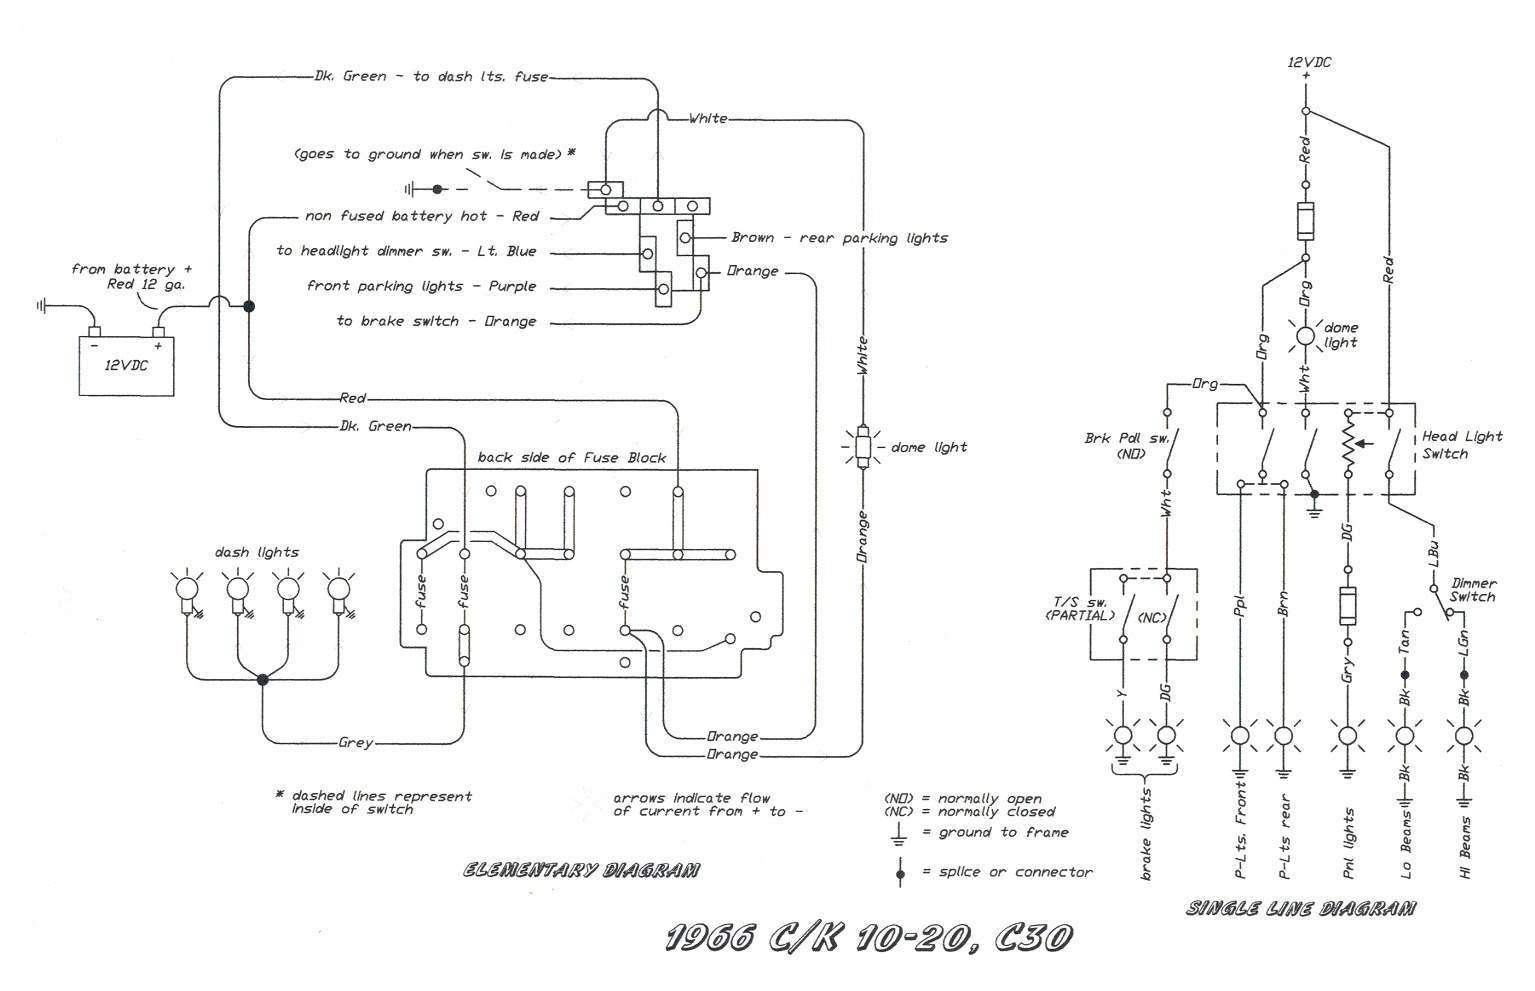 66 Chevy CorK 10%252C20 C30 truck headlight wiring diagram for universal headlight switch yhgfdmuor net  at soozxer.org